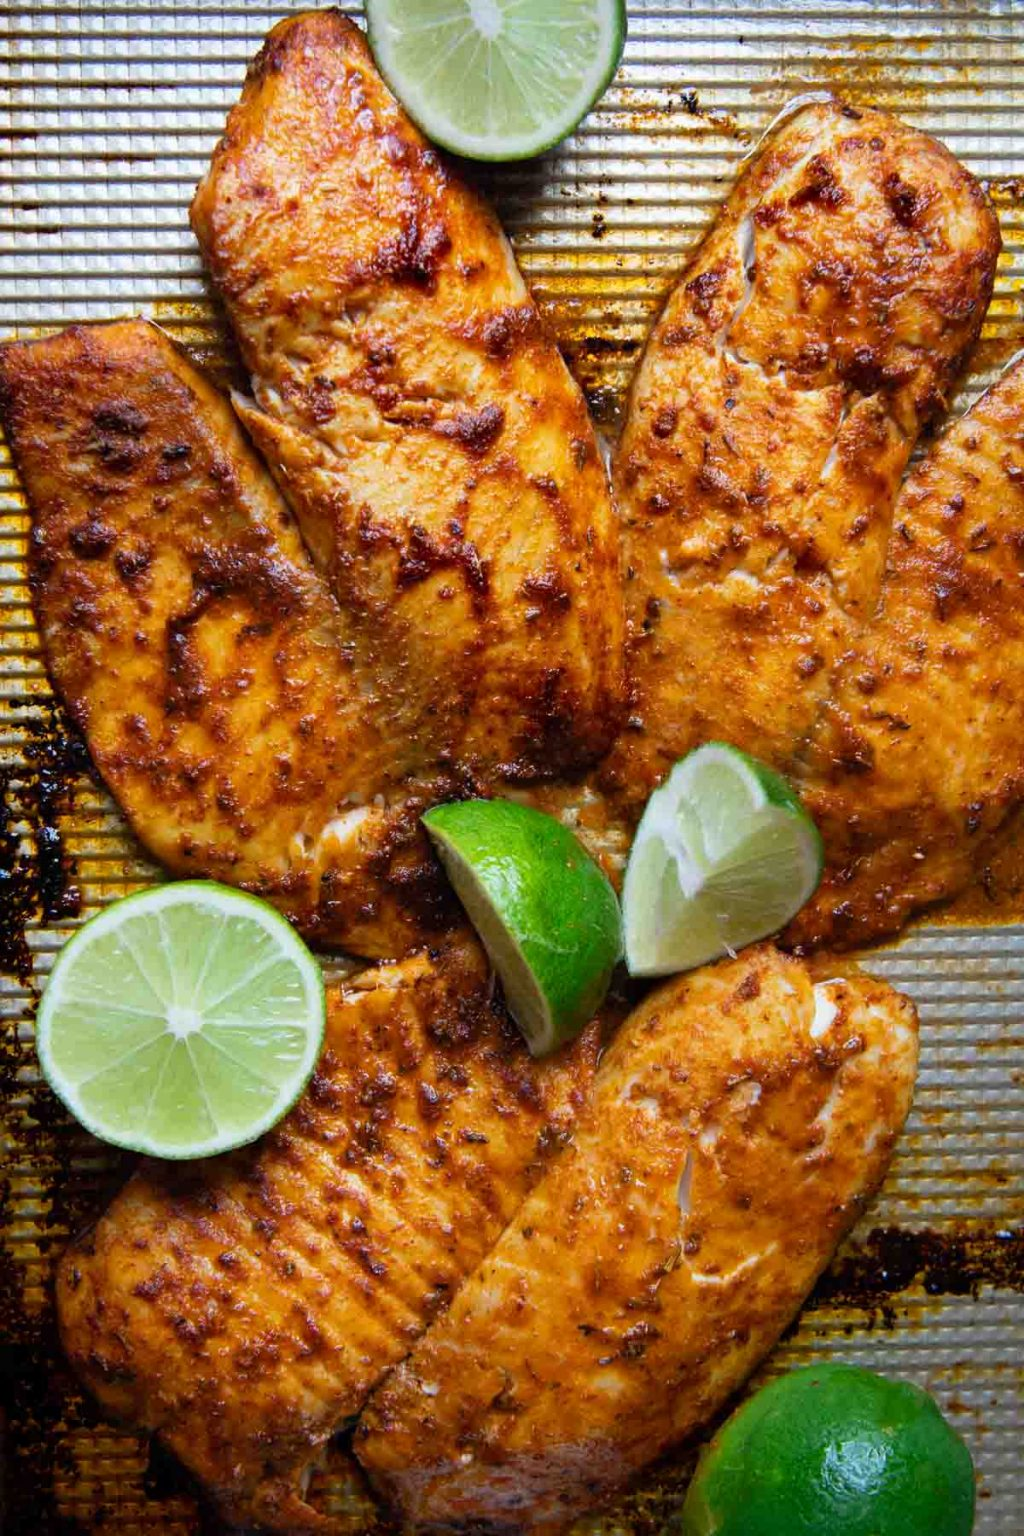 blackened seasoned fish on a baking sheet with limes